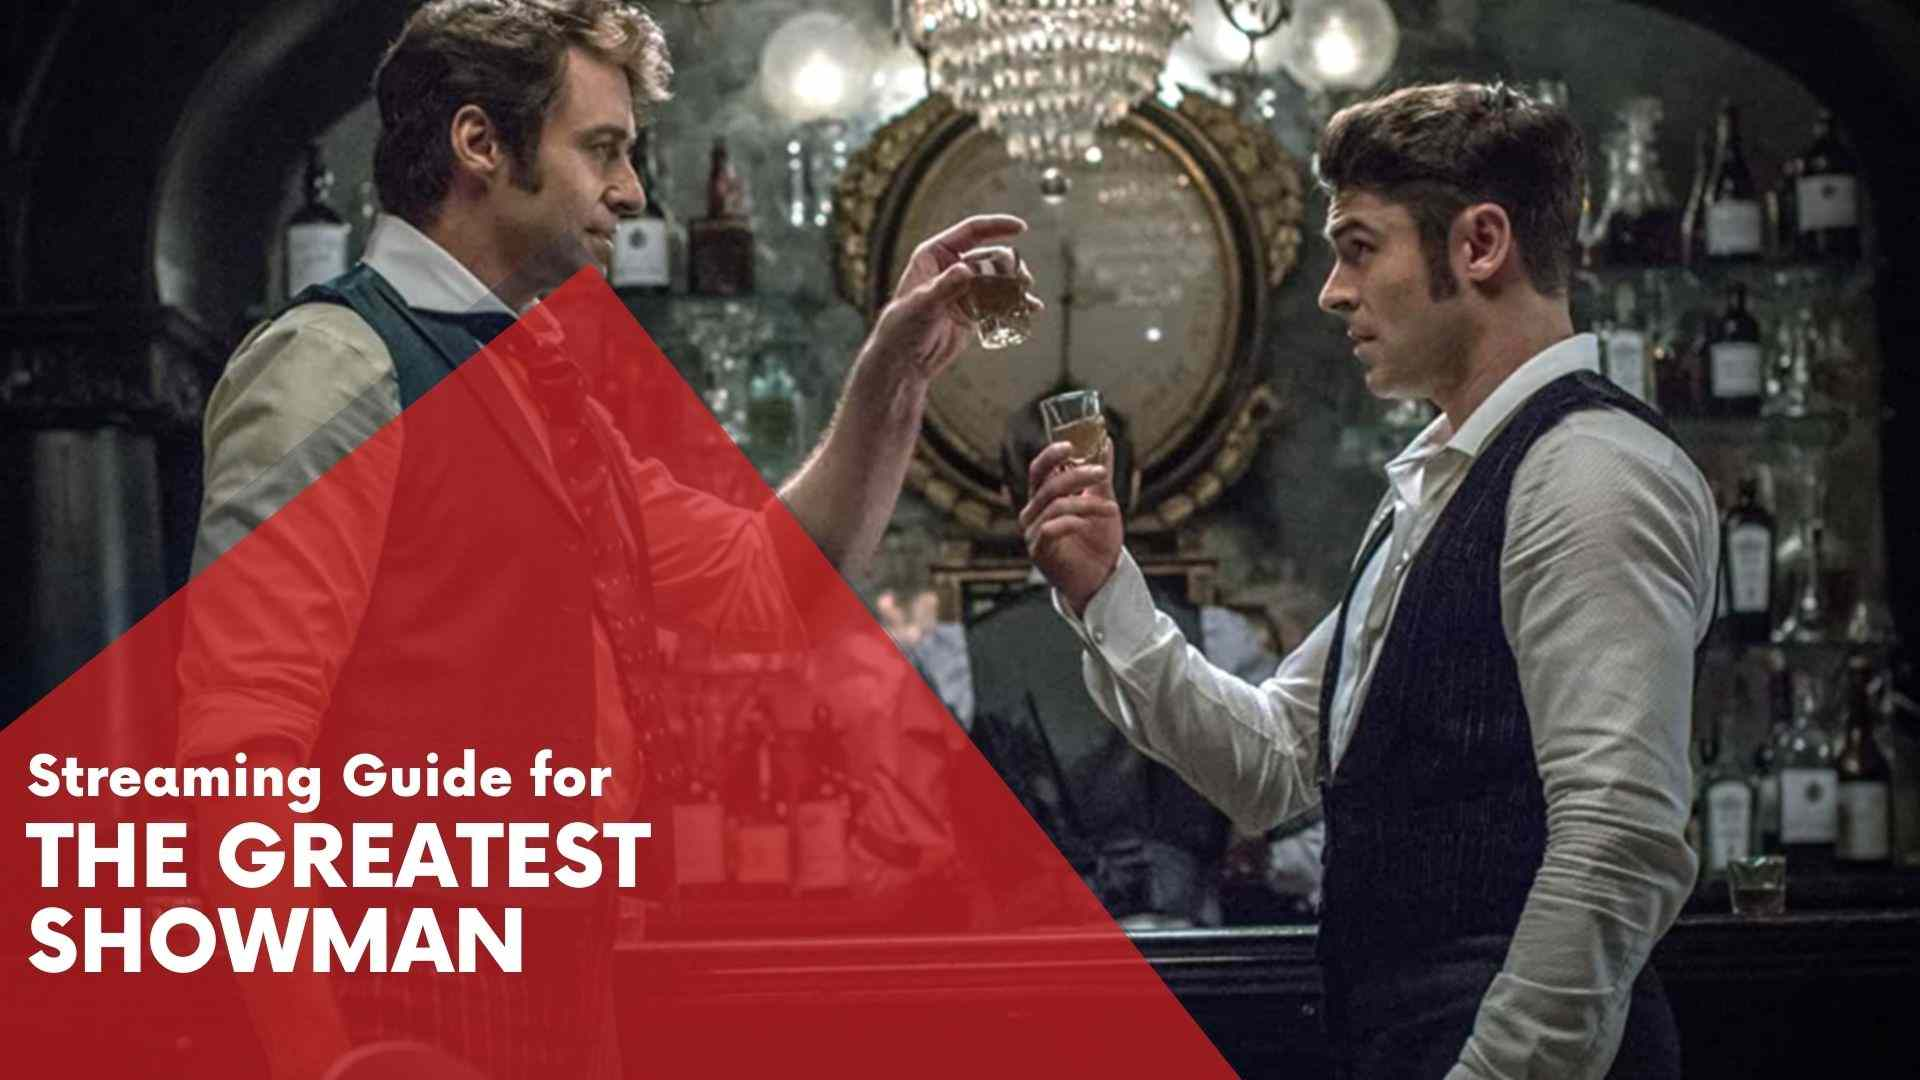 The Greatest Showman Streaming Guide